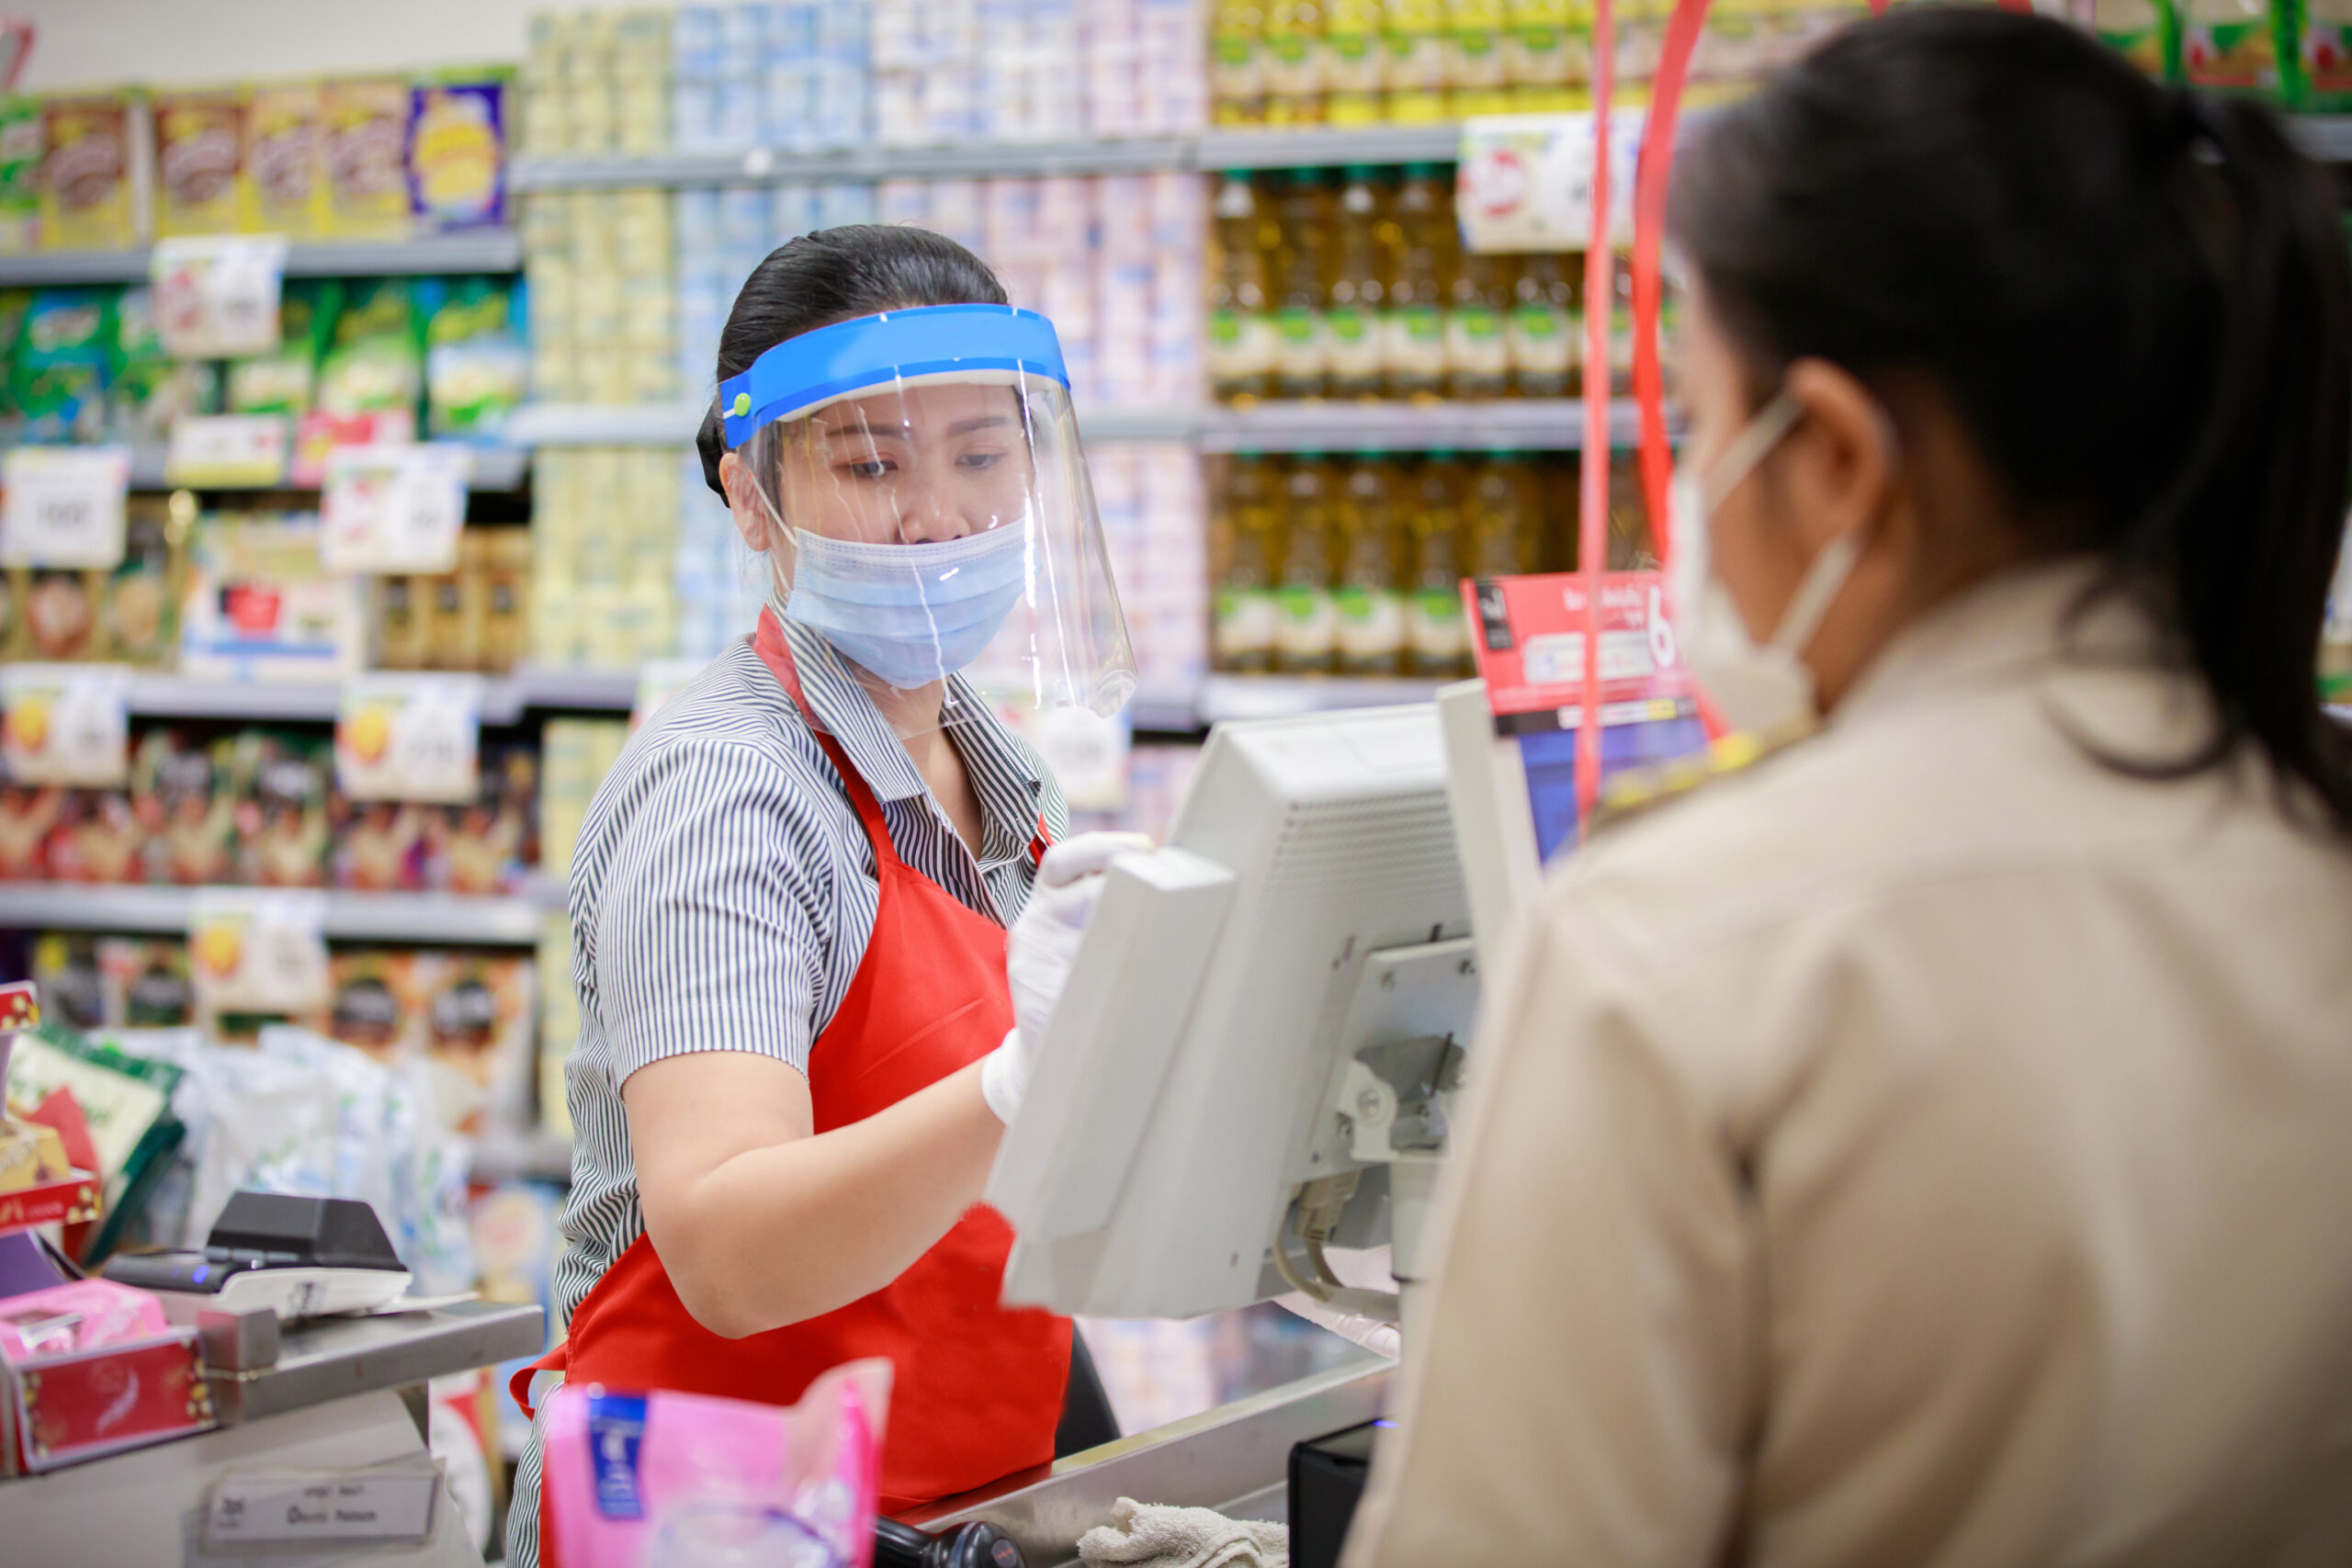 An immigrant worker working during the coronavirus pandemic.